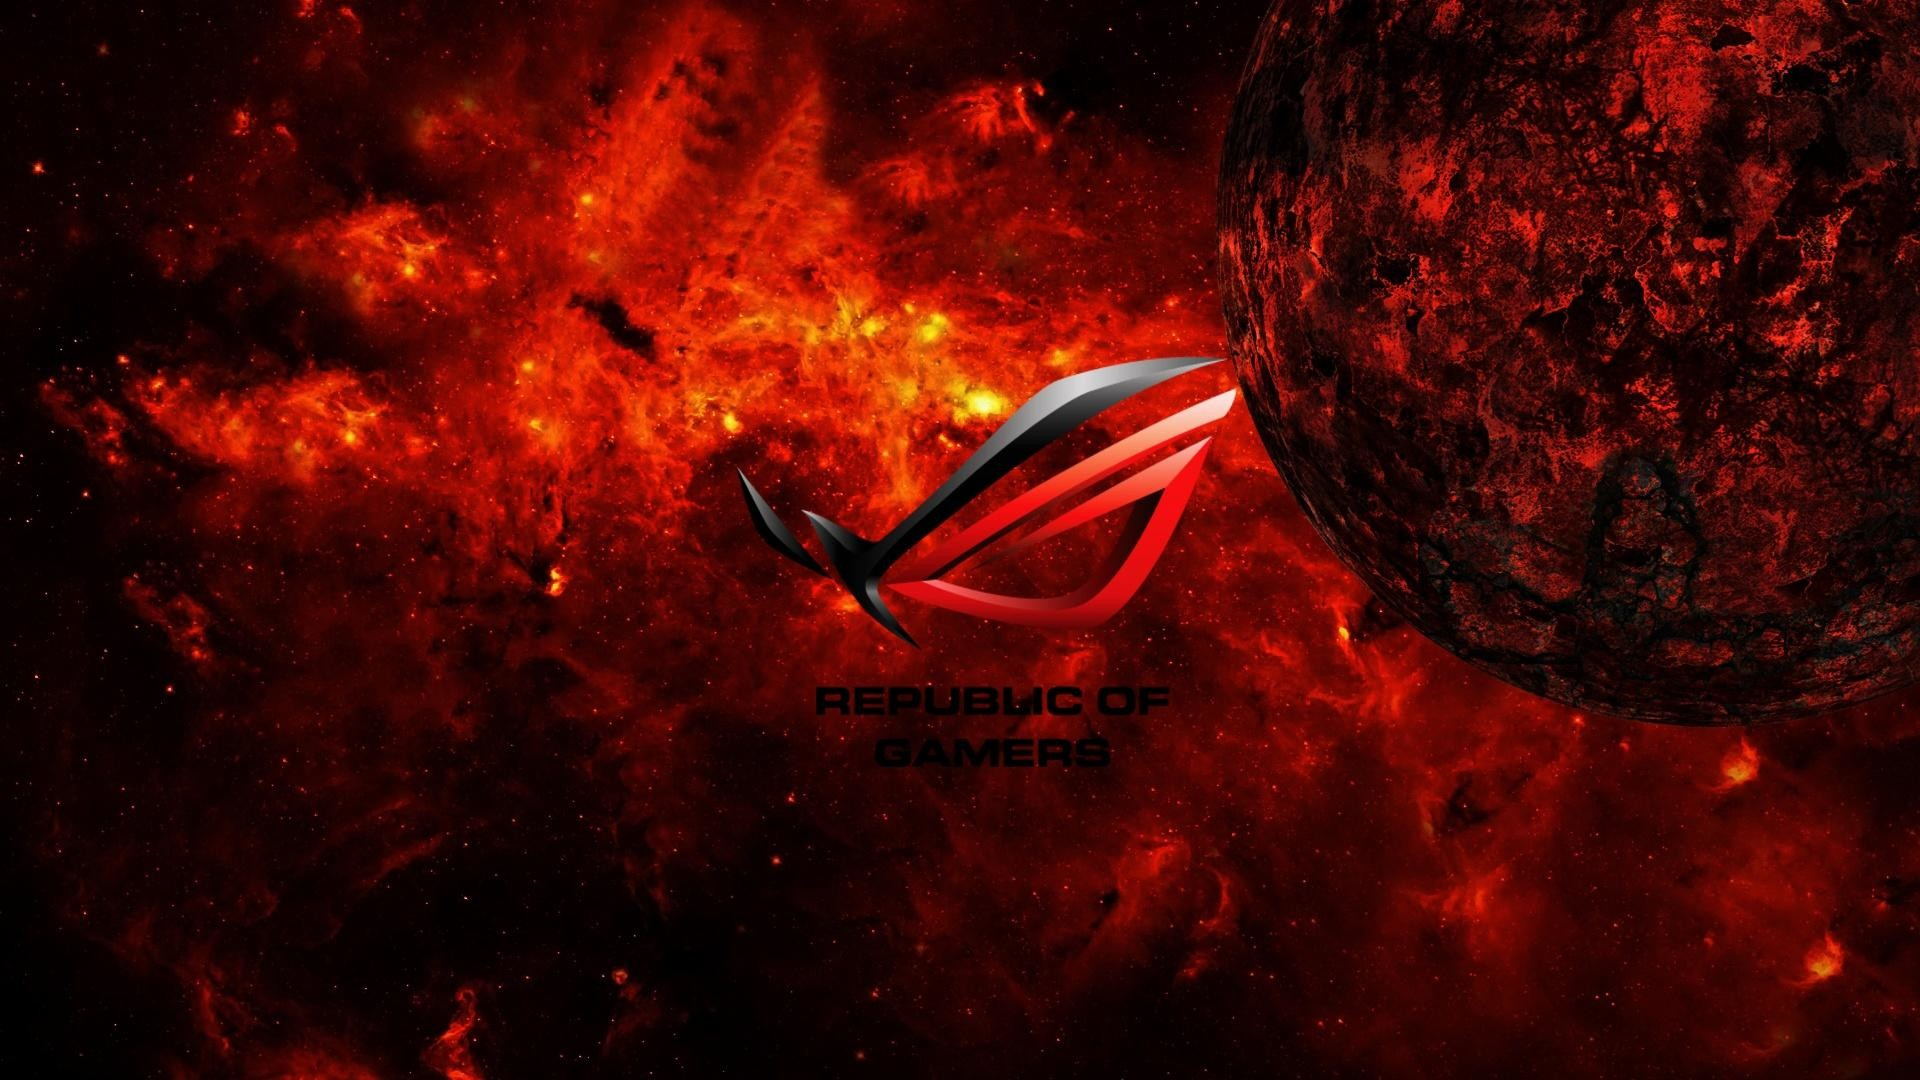 Free Republic of Gamers Wallpapers HD Download – Page 2 of 3 – wallpaper .wiki